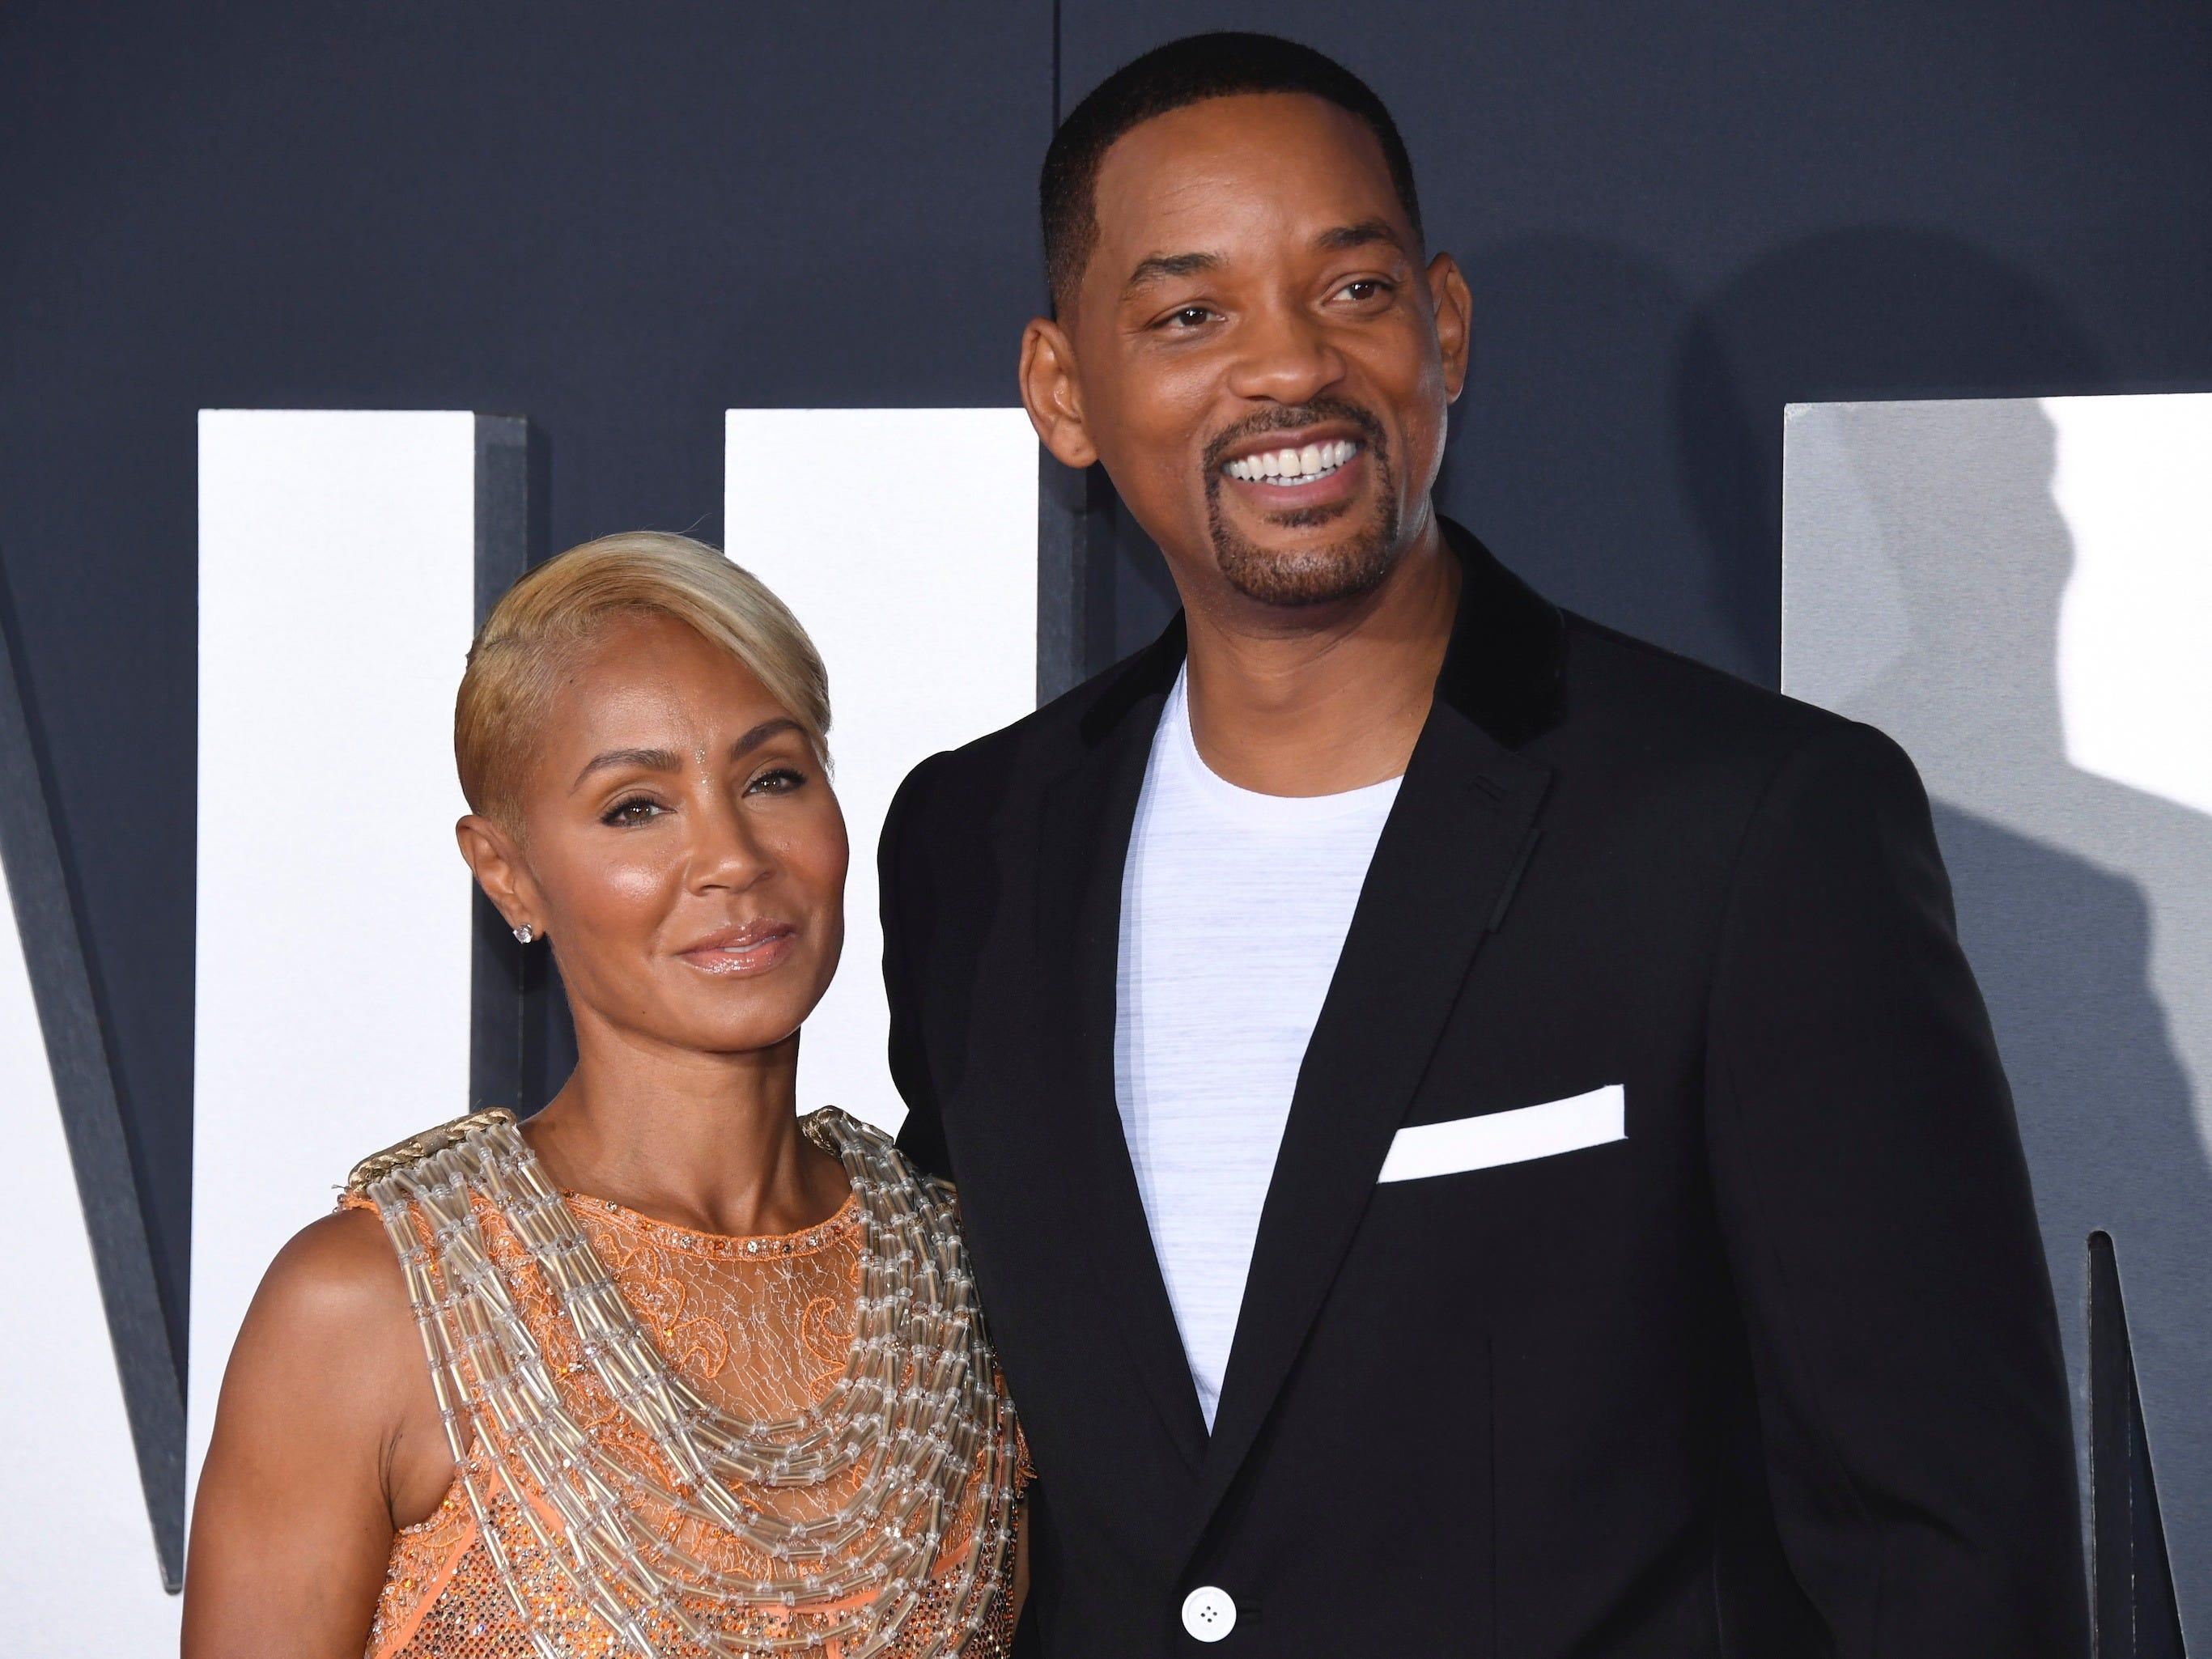 Will Smith reveals that he and Jada Pinkett Smith decided at one point in their marriage that they would no longer be monogamous: 'Marriage for us can't be a prison'